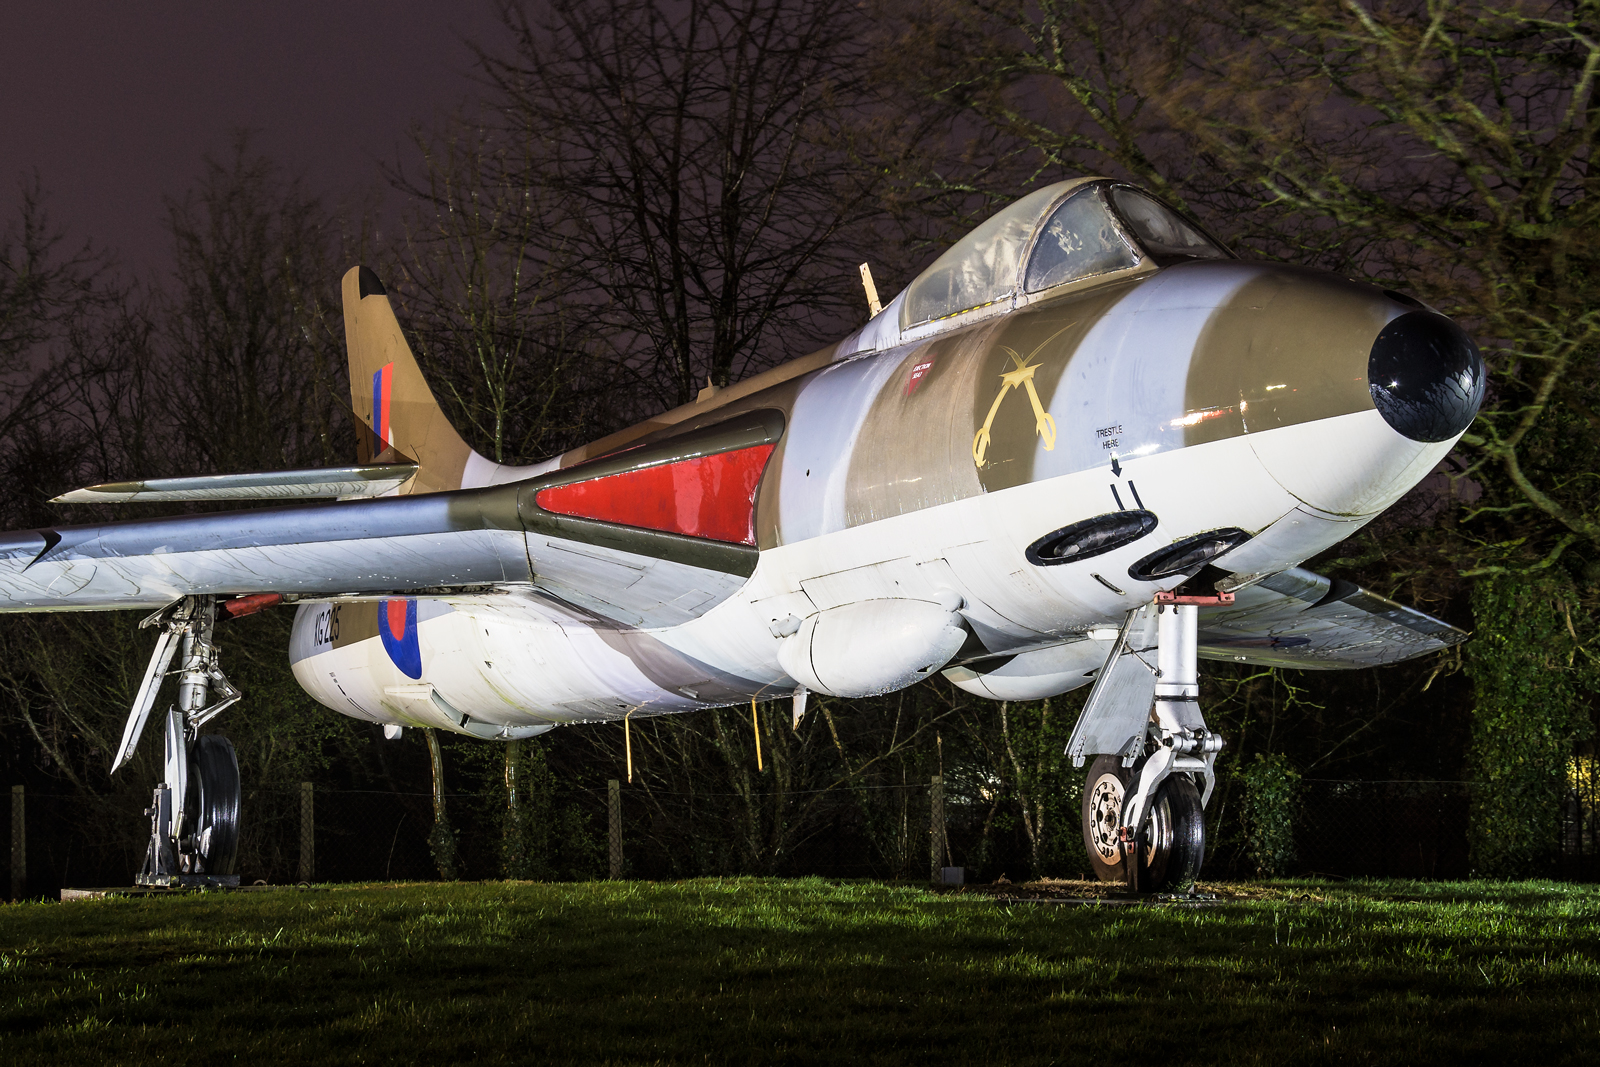 Museums, vol. 51 – United Kingdom – RAF Cosford (External Display Nightshoot)